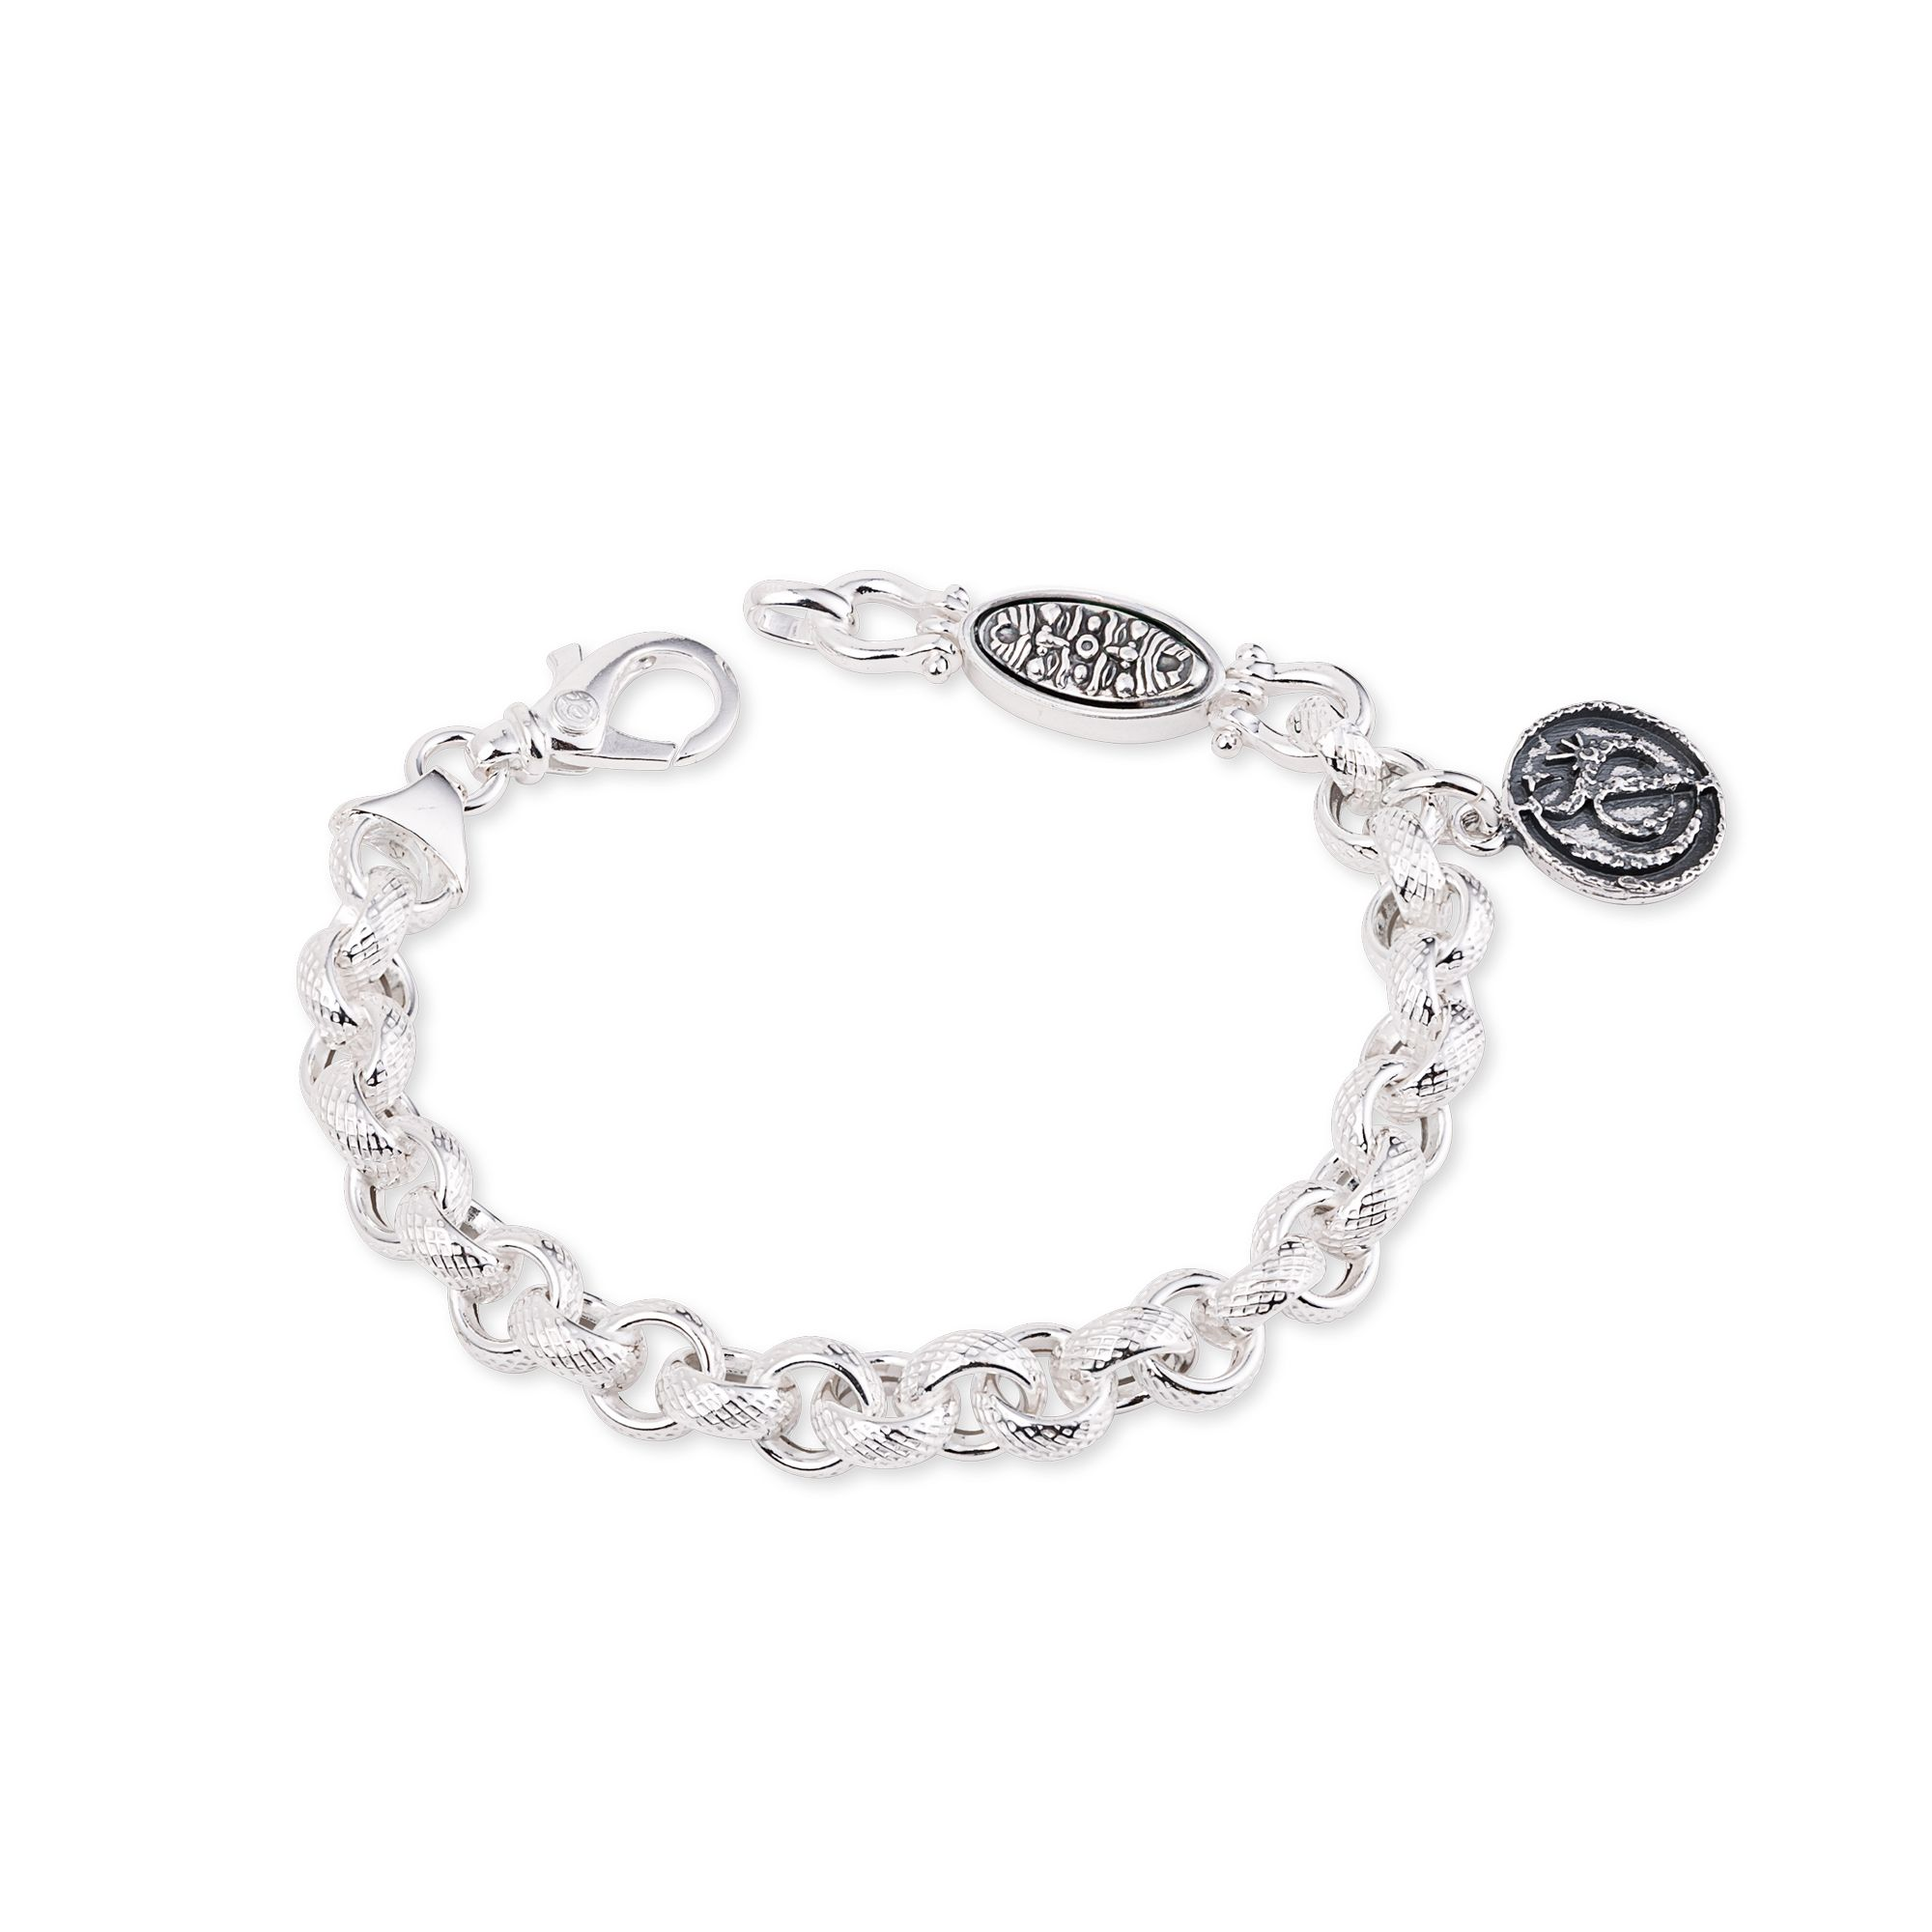 Chain Bracelet with double-faced element (50226)